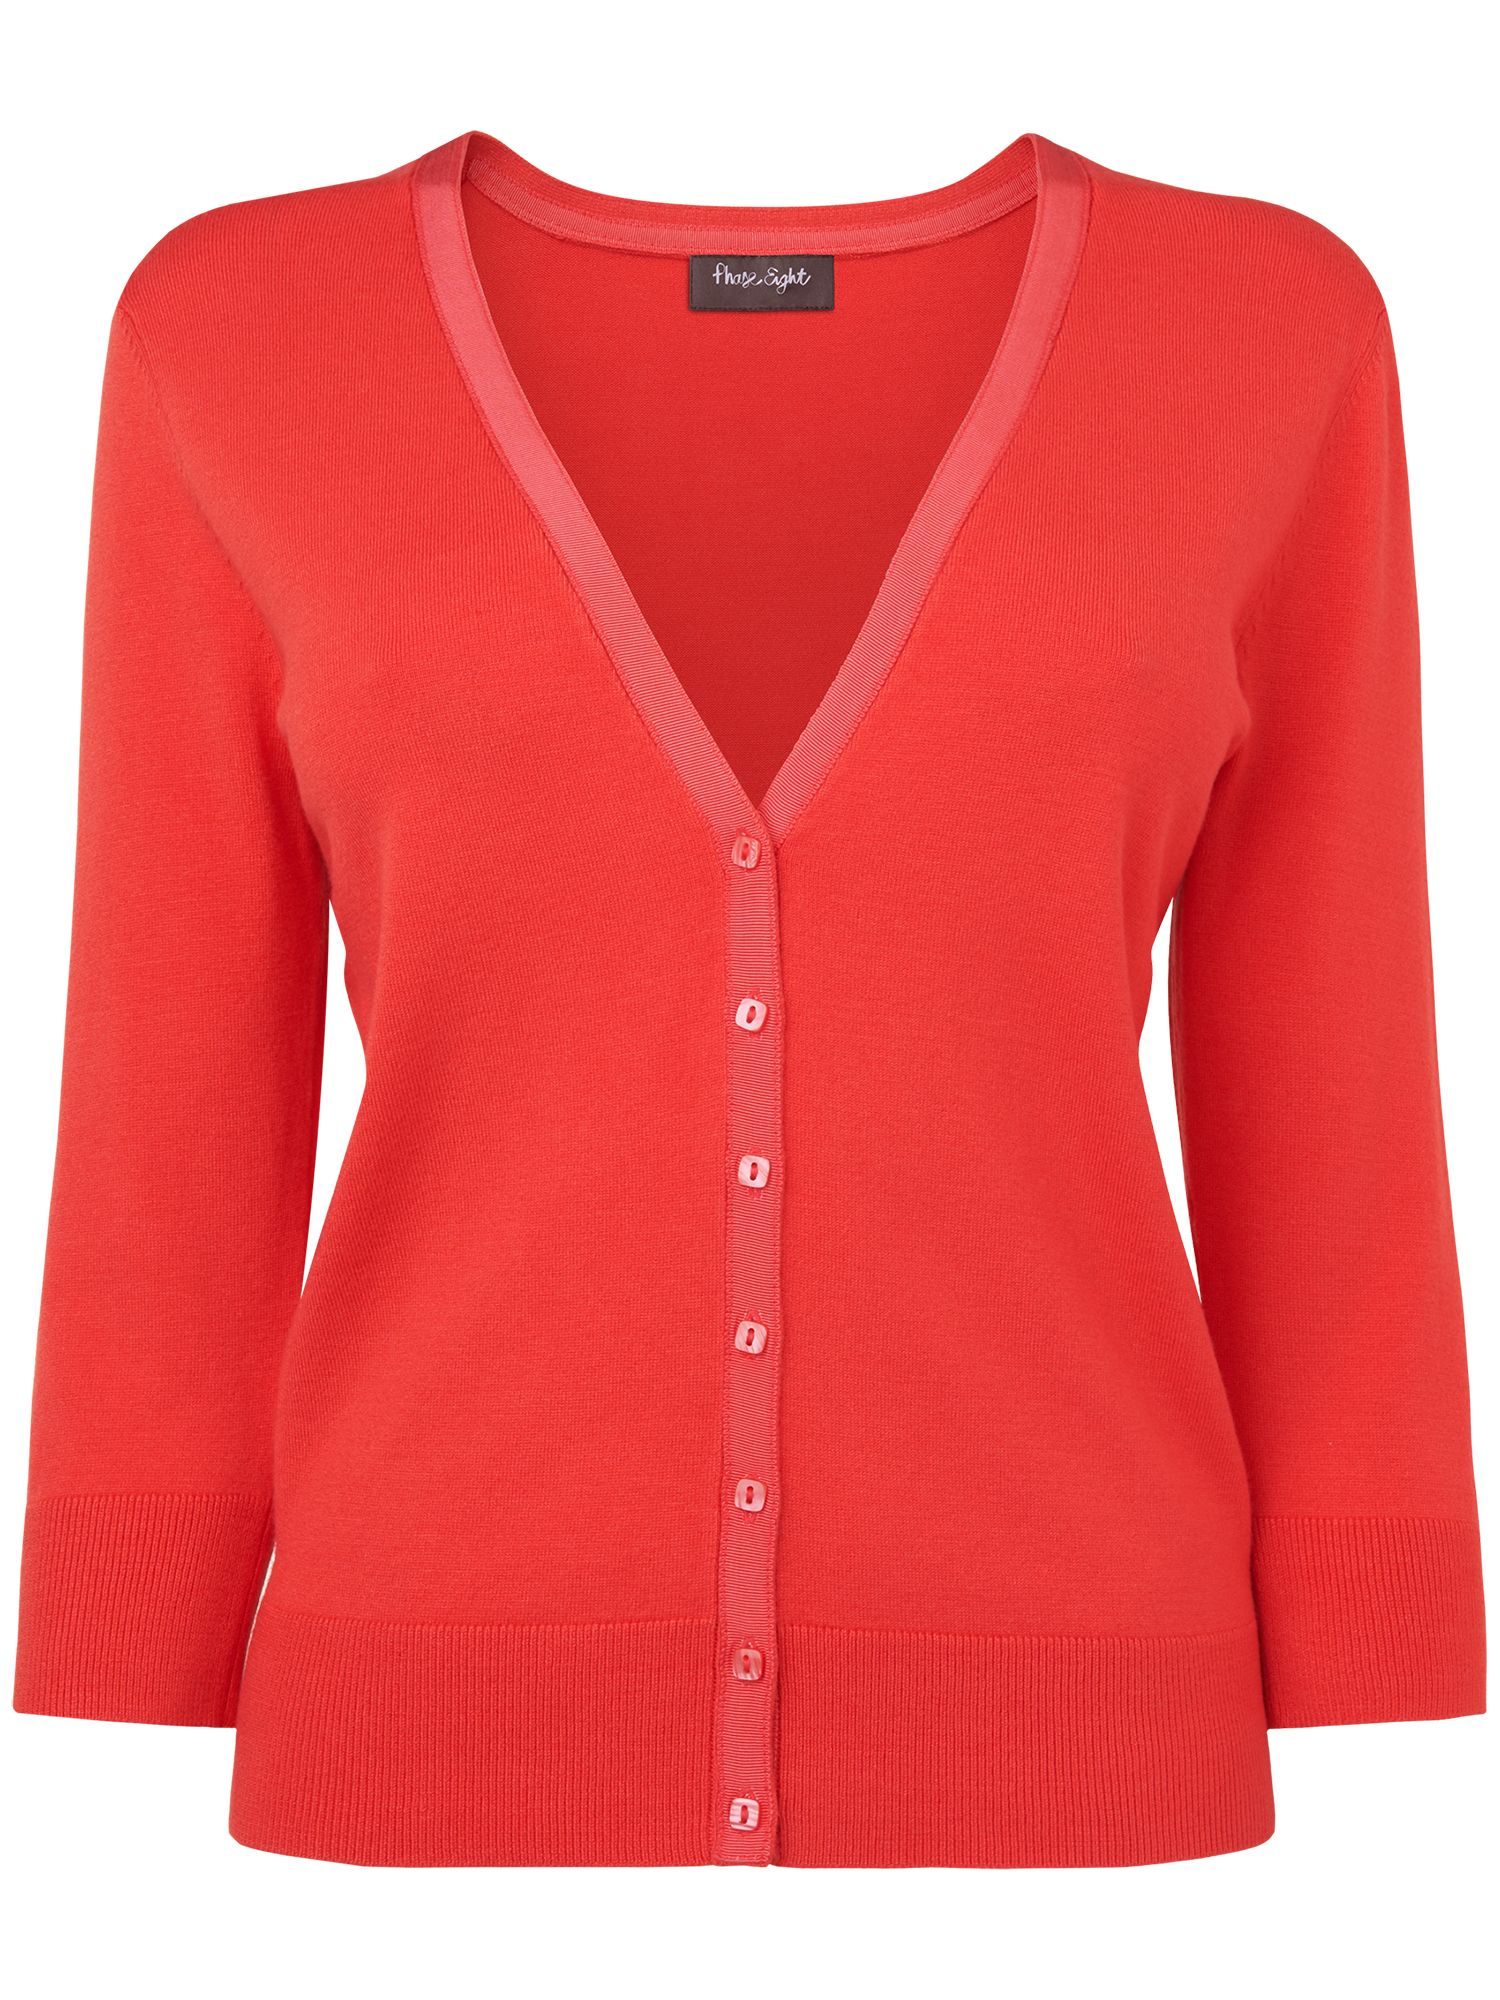 Carrie simple v neck cardigan